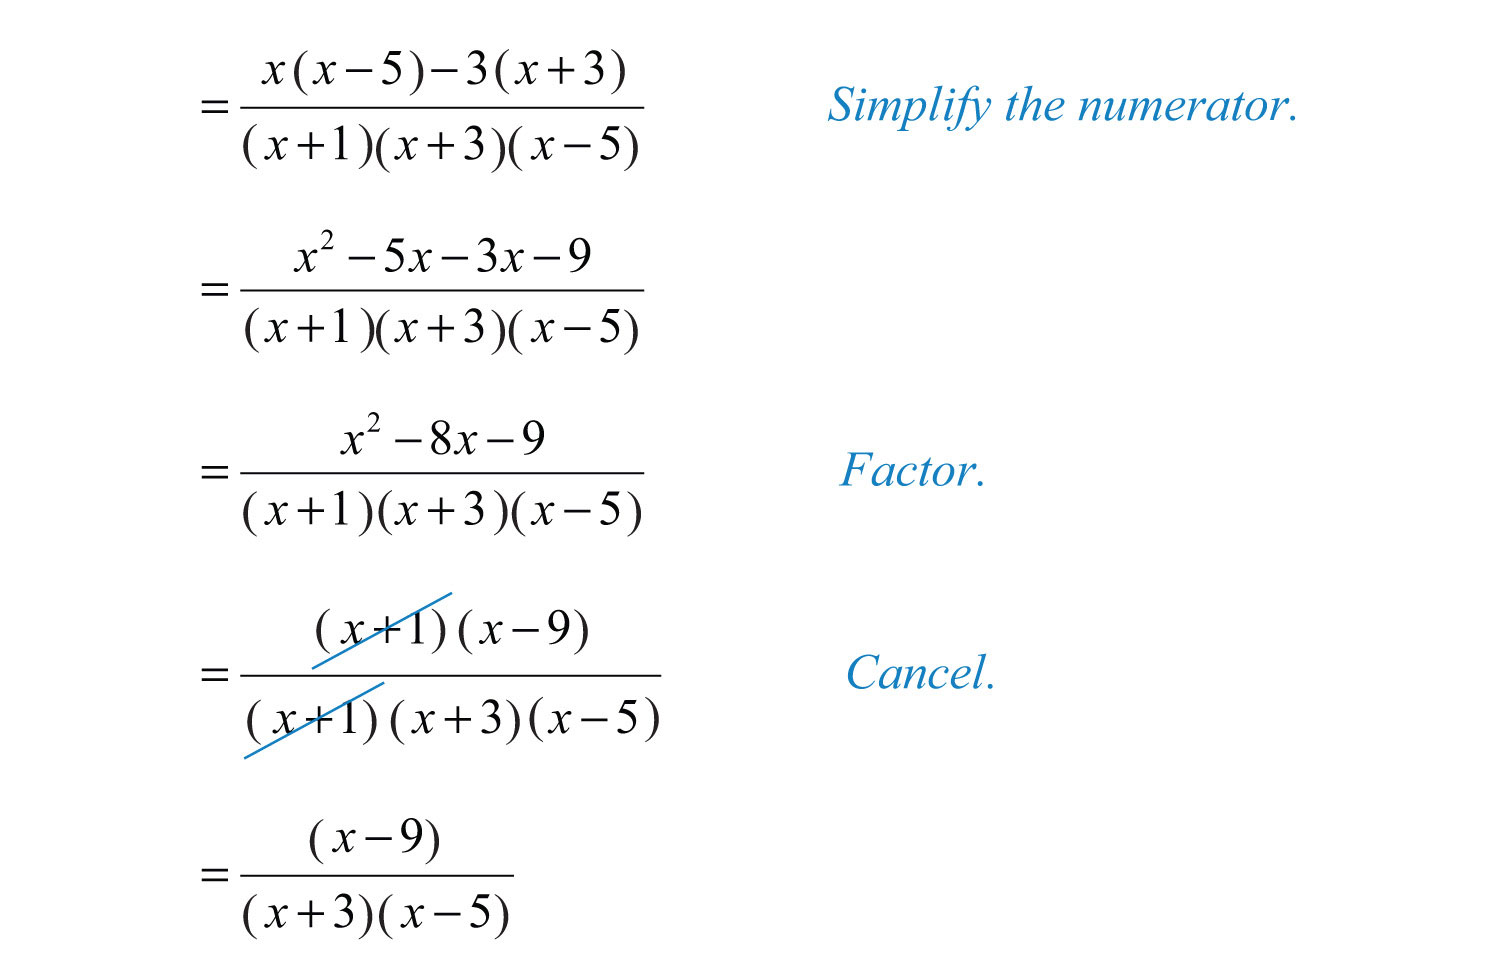 Step 4: Simplify The Resulting Algebraic Fraction